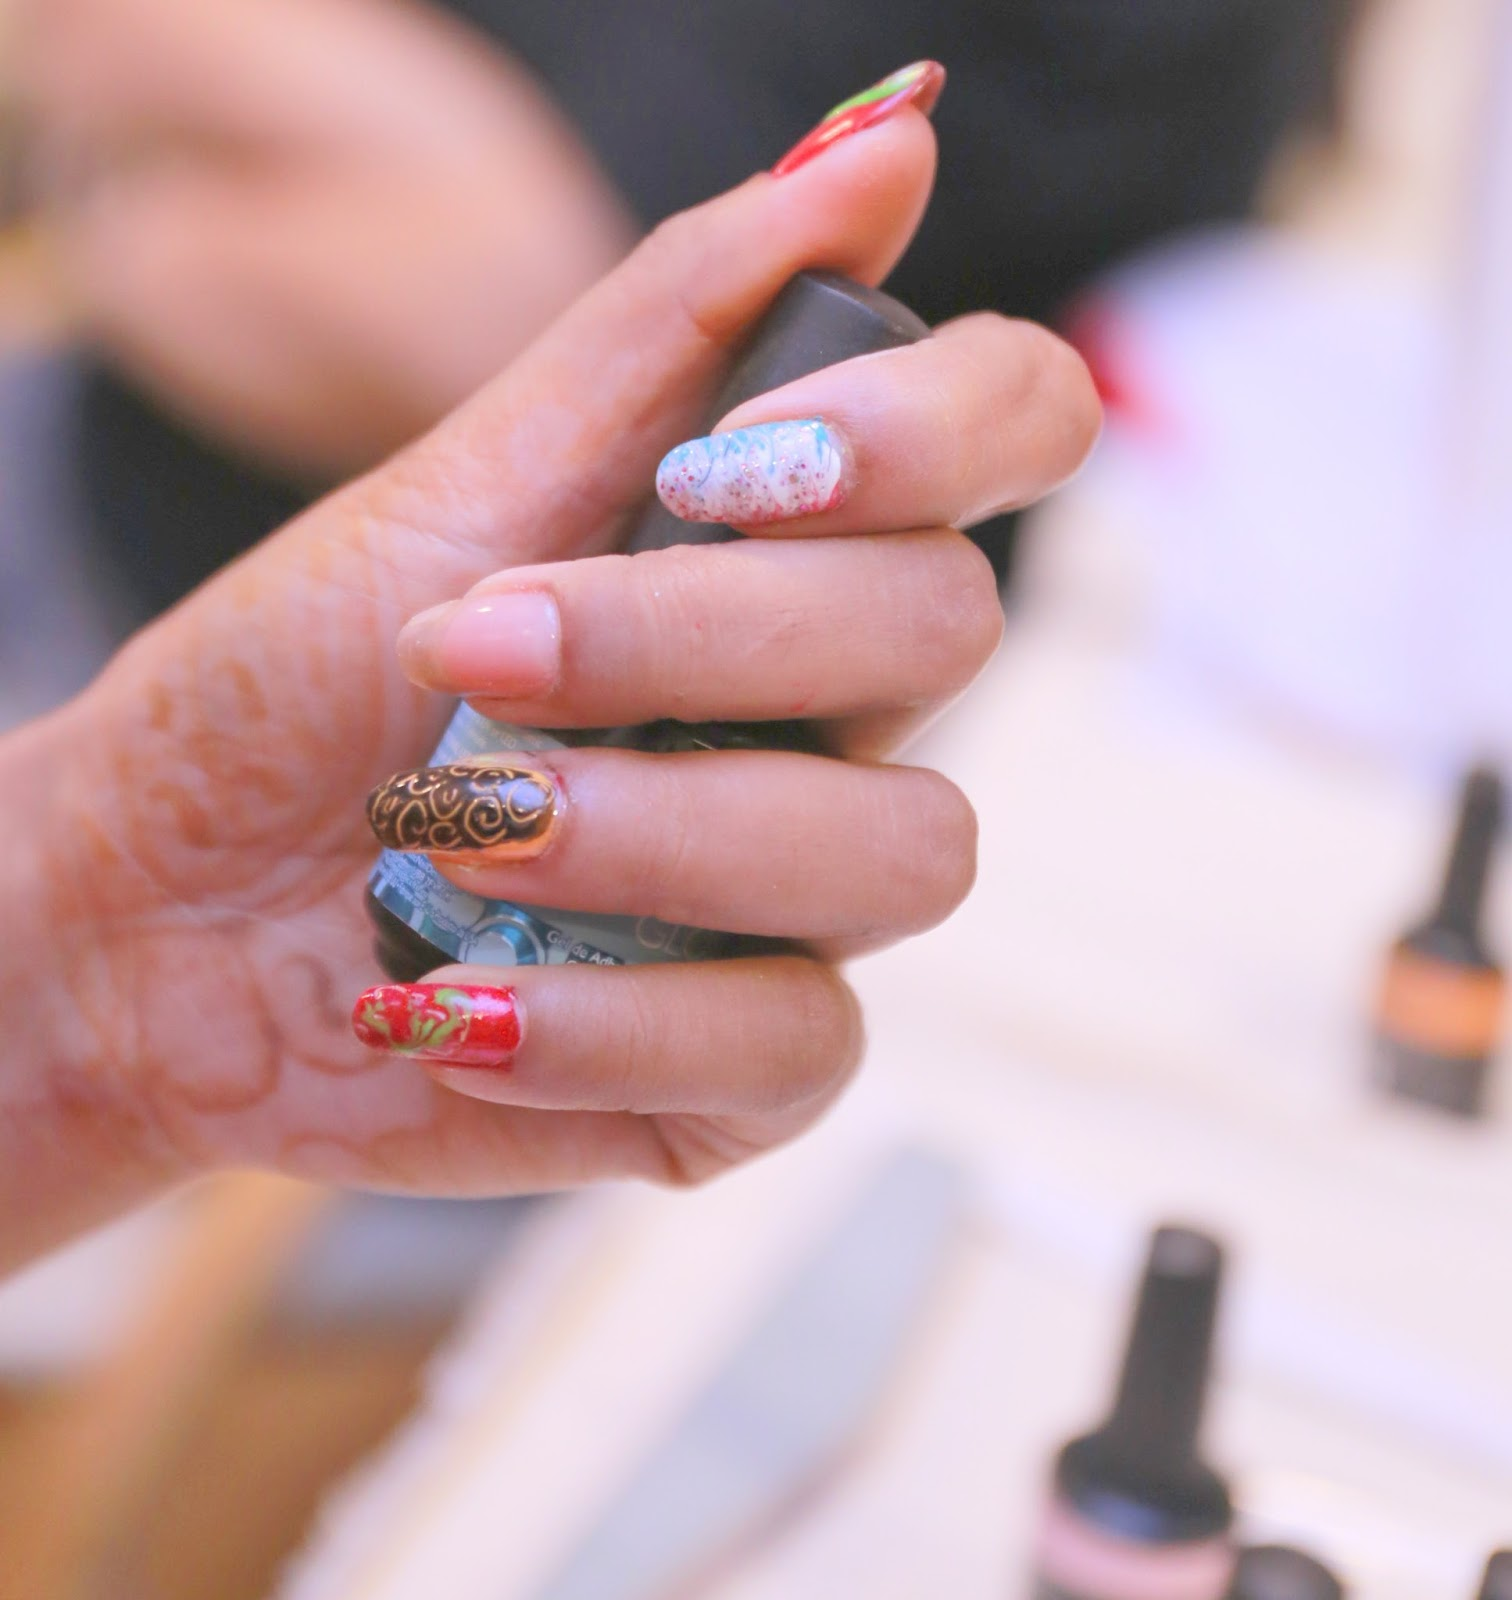 Streamline India presented The Artistic Nail design Show 2015 - Streamline India Presented The Artistic Nail Design Show 2015 Teen